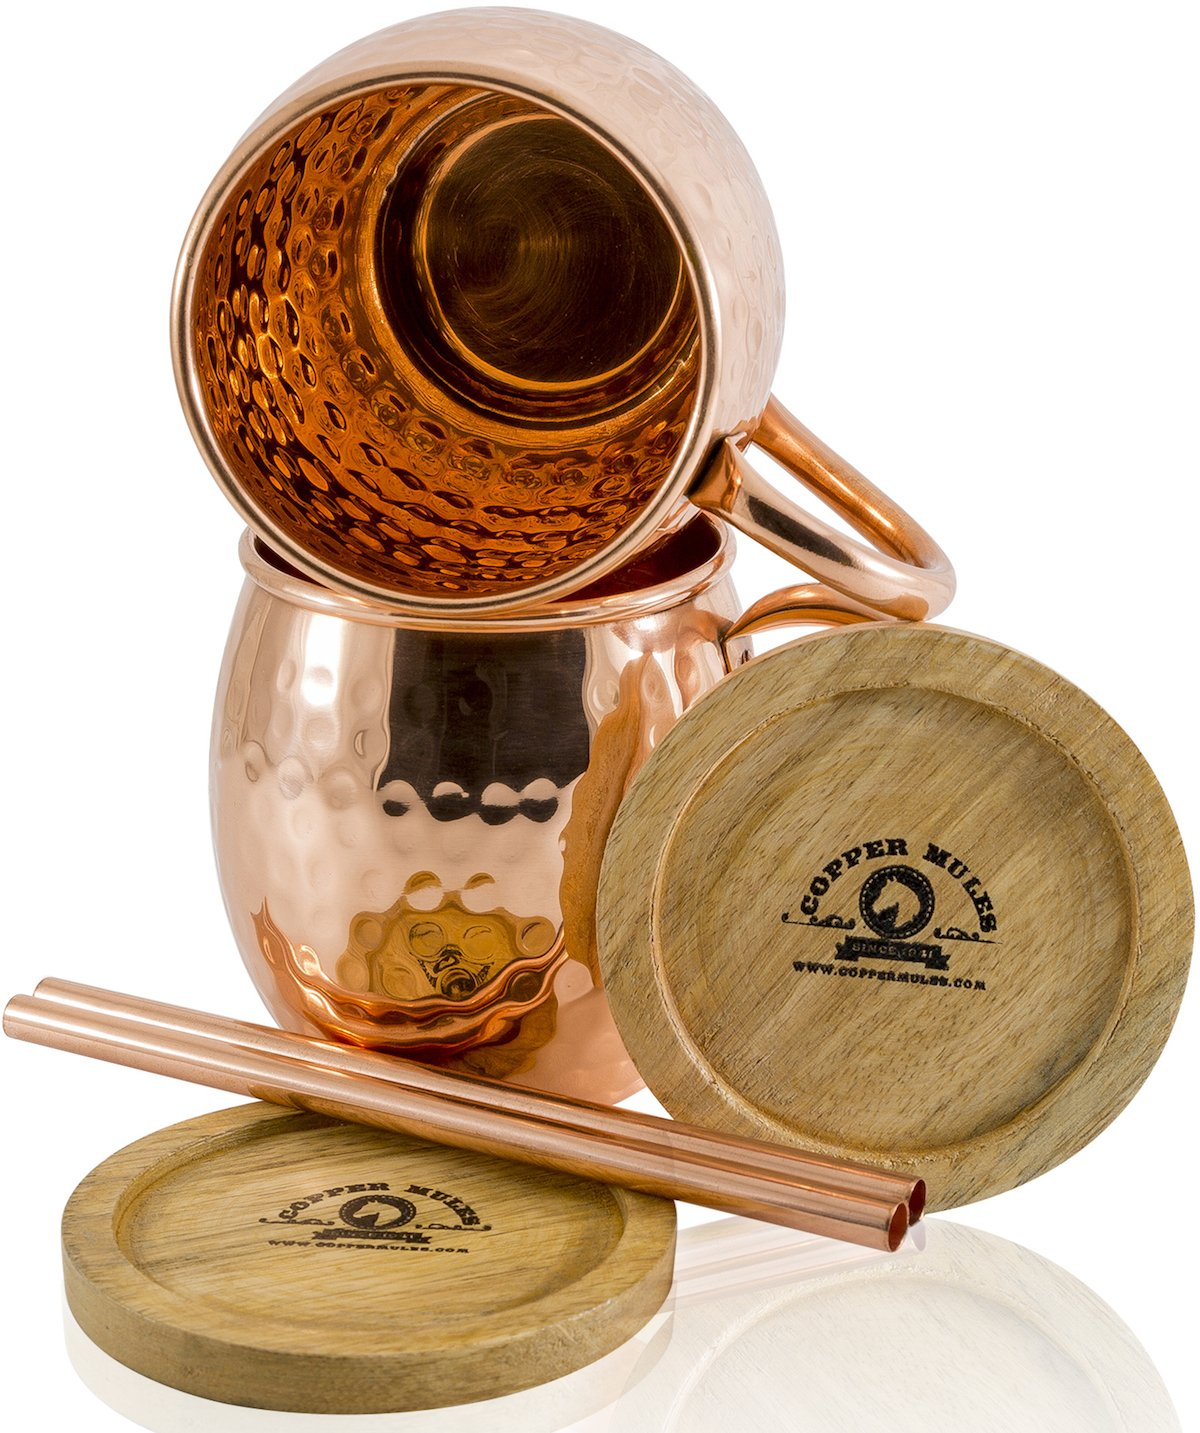 Moscow Mule Copper Mugs Set of 2 by Copper Mules – Hand Hammered – Classic Riveted Handles – Holds 16oz